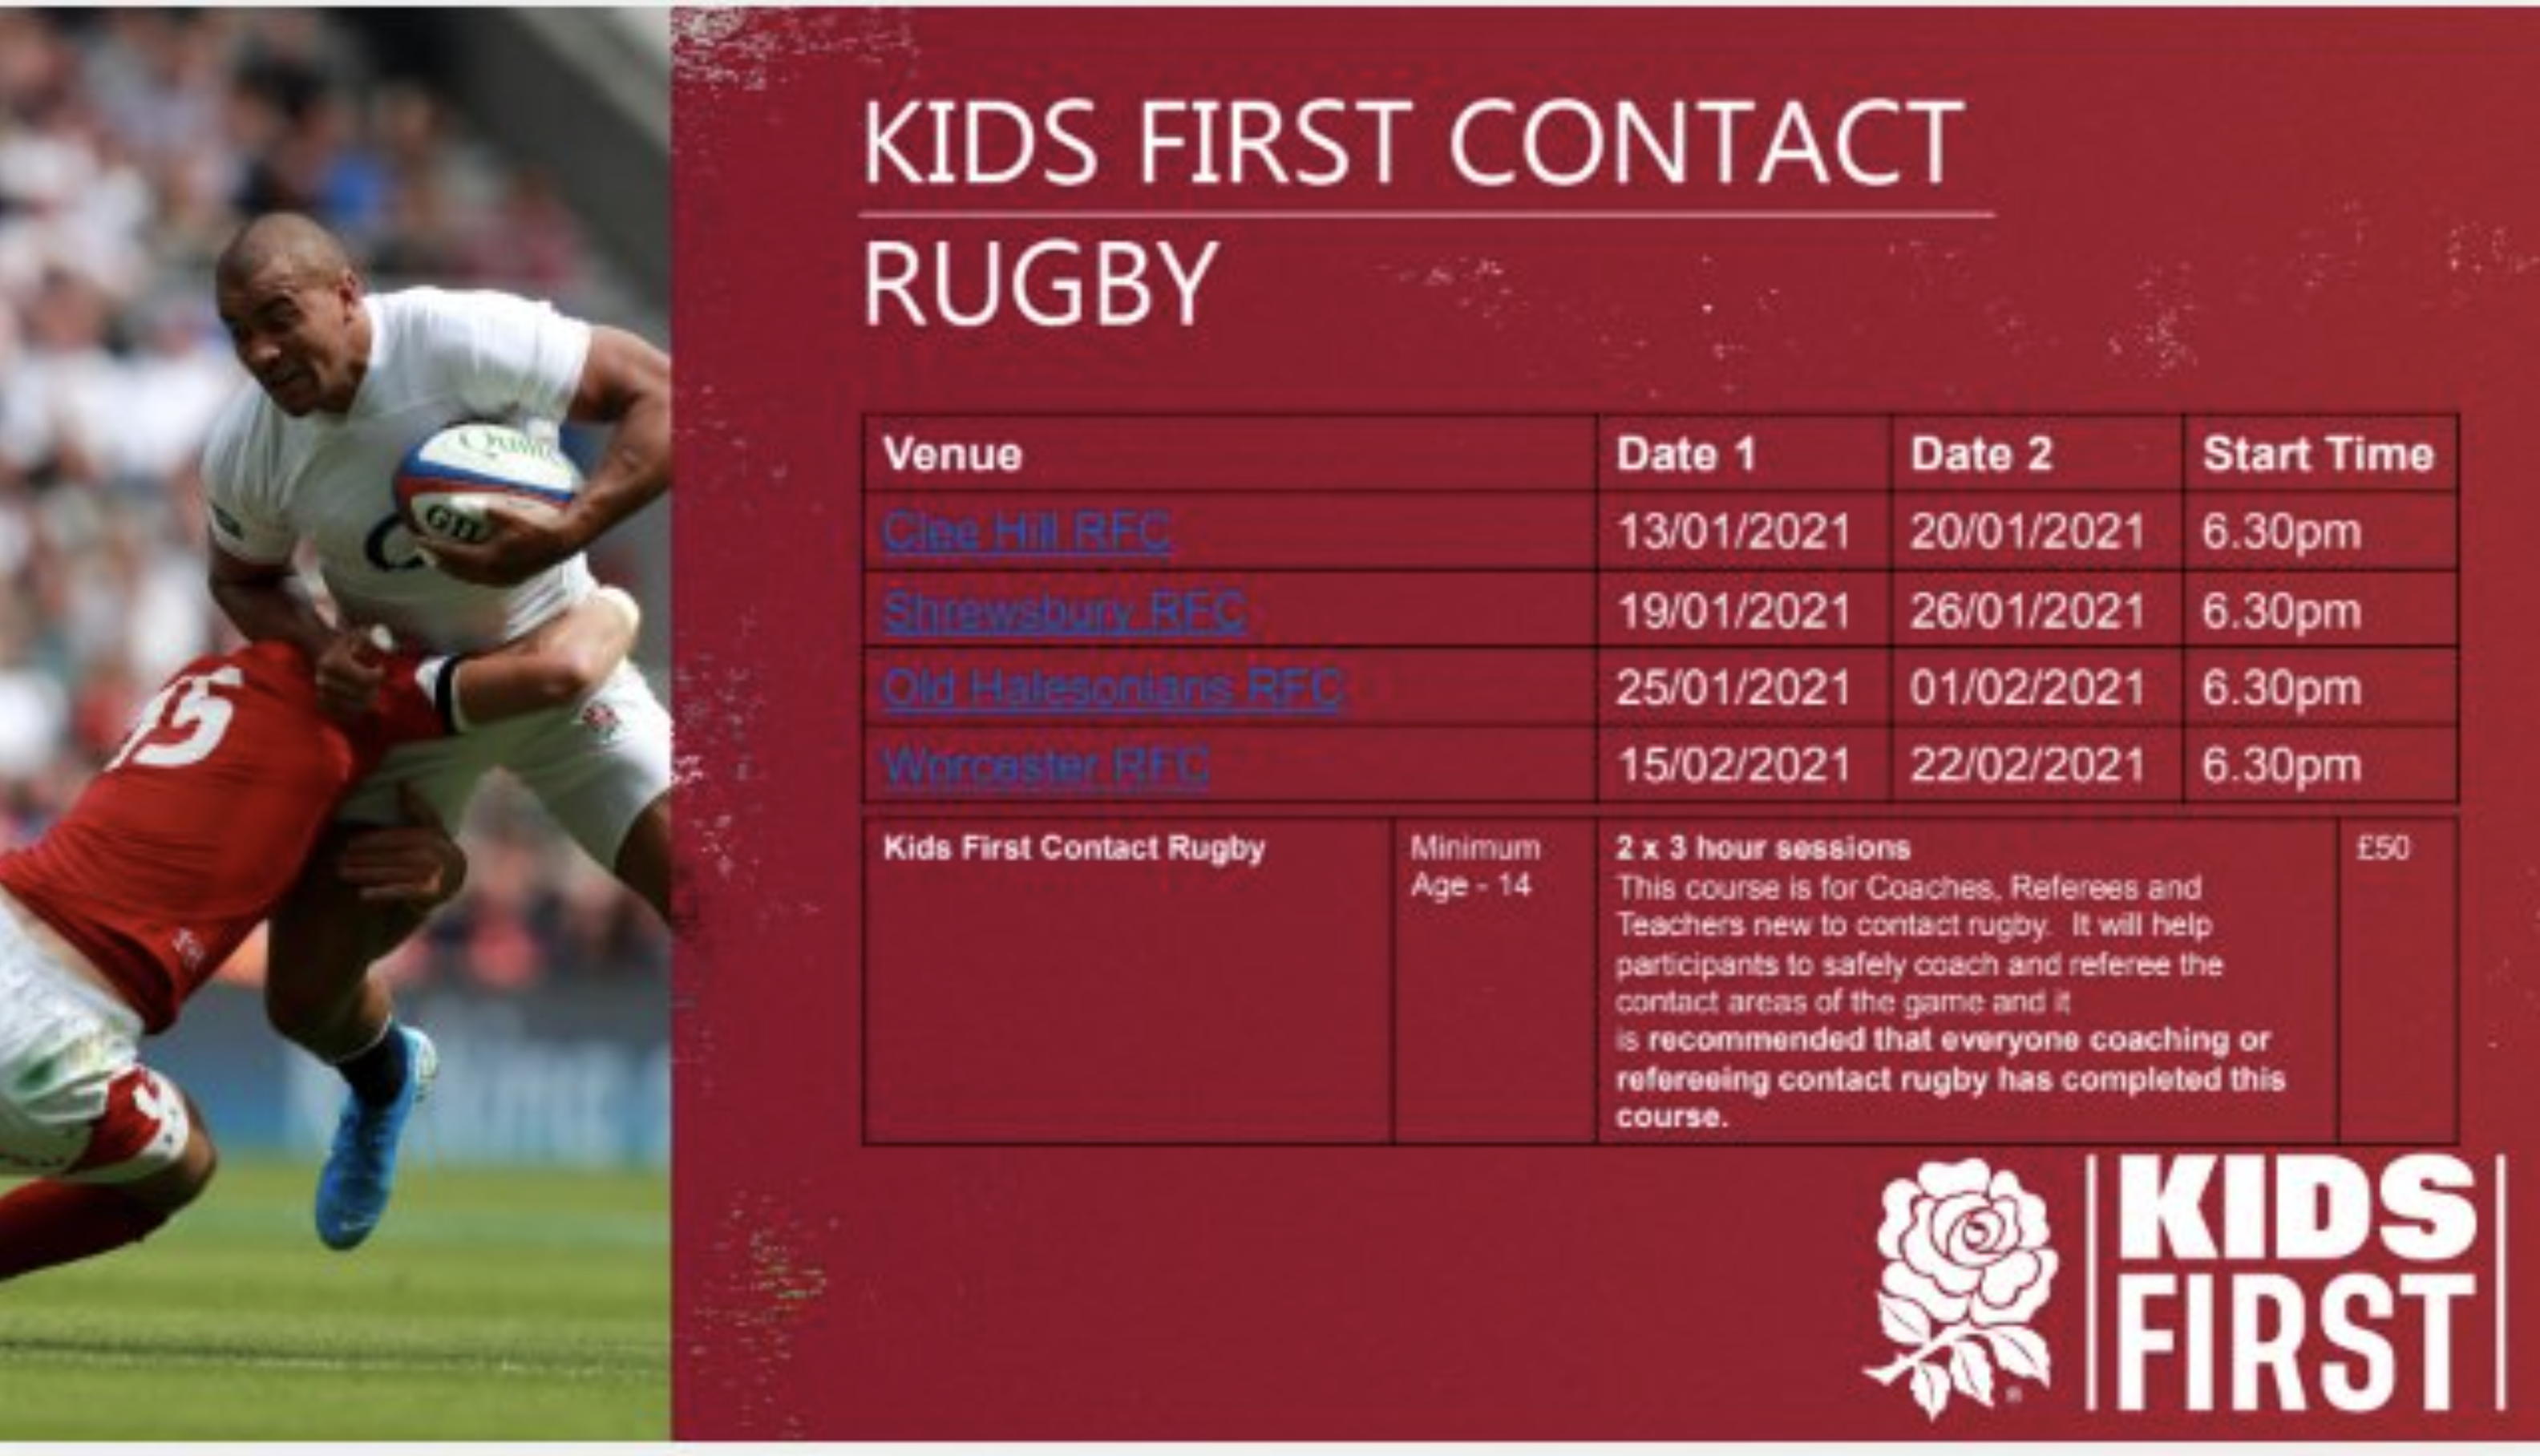 Kids First Contact Rugby Course Details